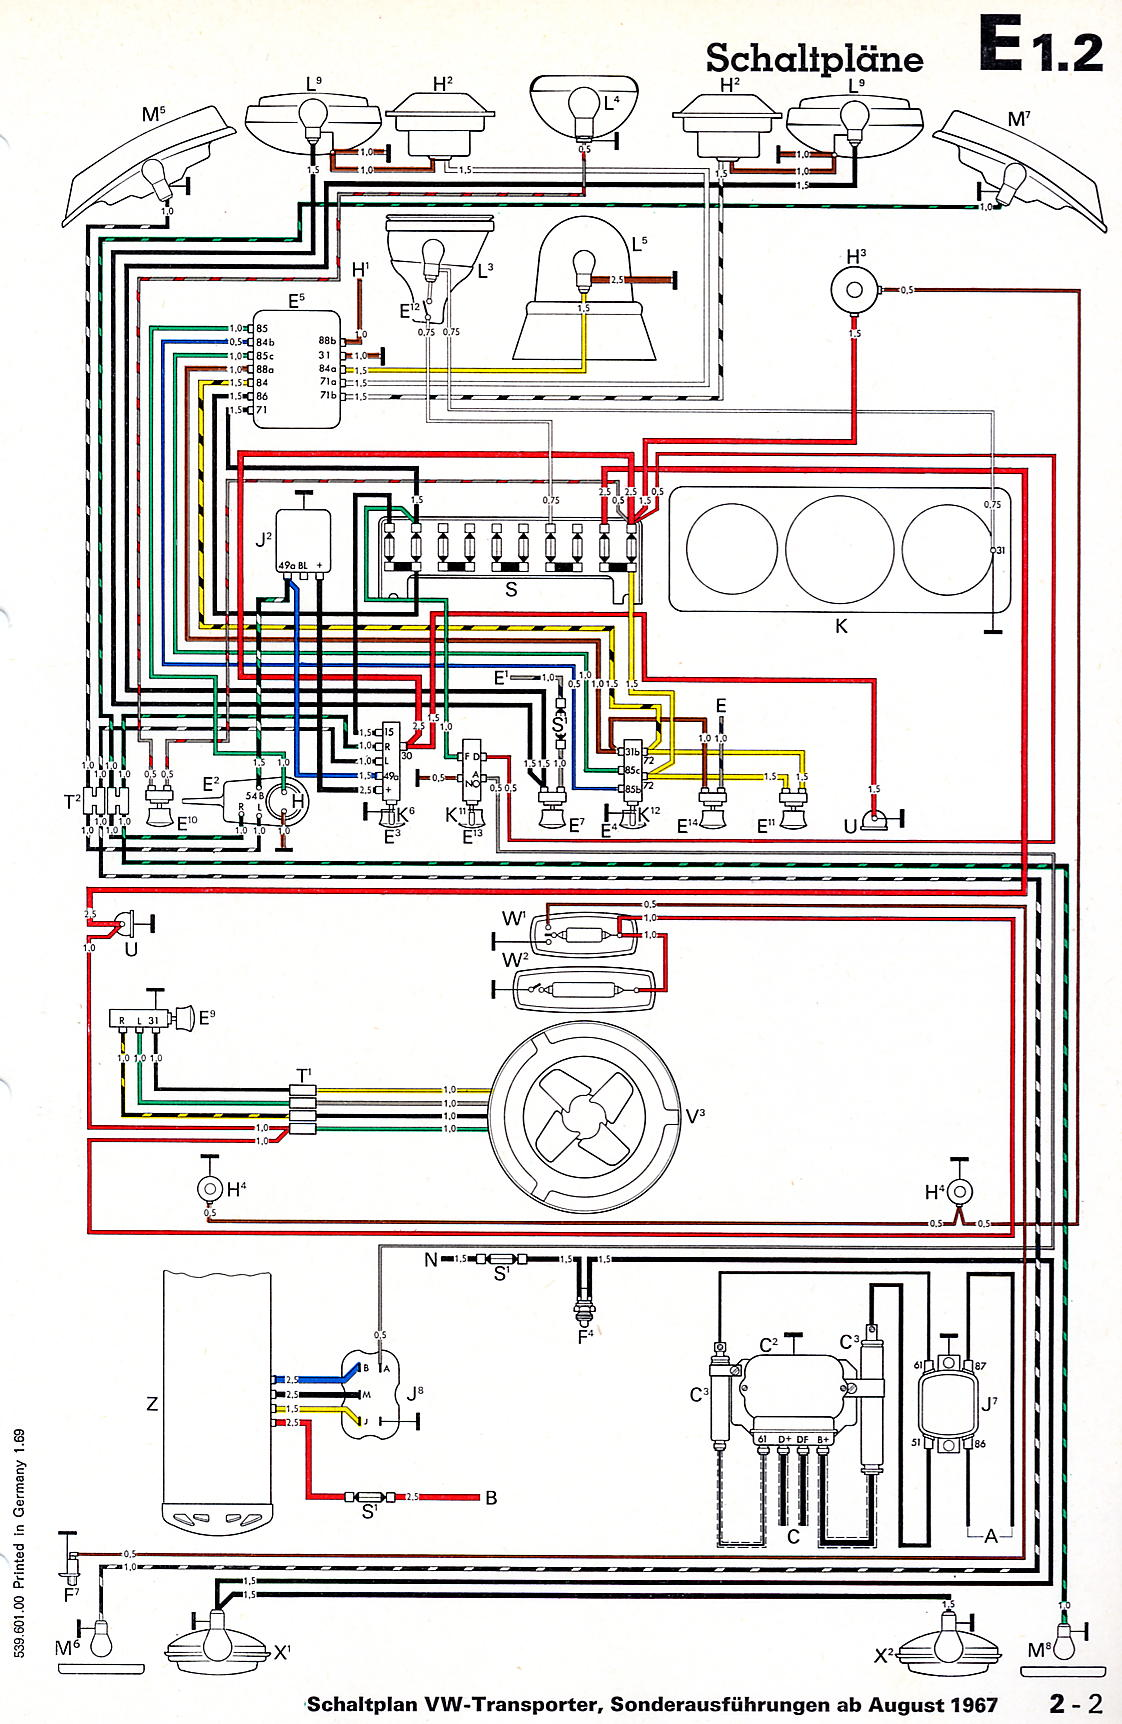 Vw Bus And Other Wiring Diagrams 1984 Pontiac Grand Prix Diagram 2